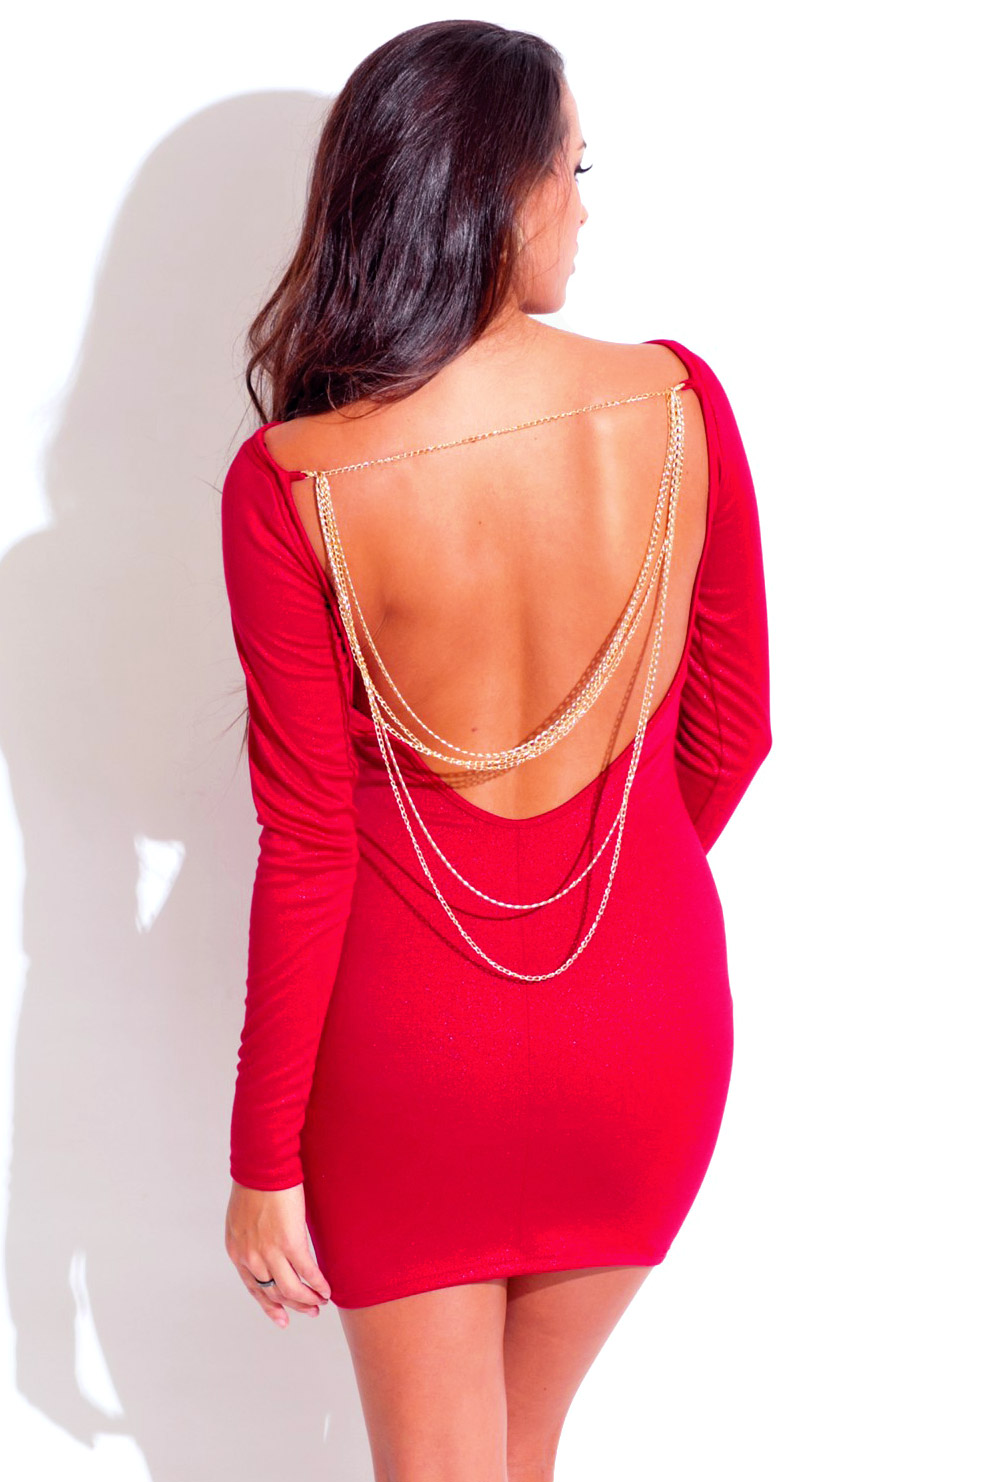 Lipstick red long sleeve backless bejeweled metallic fitted bodycon clubbing mini dress